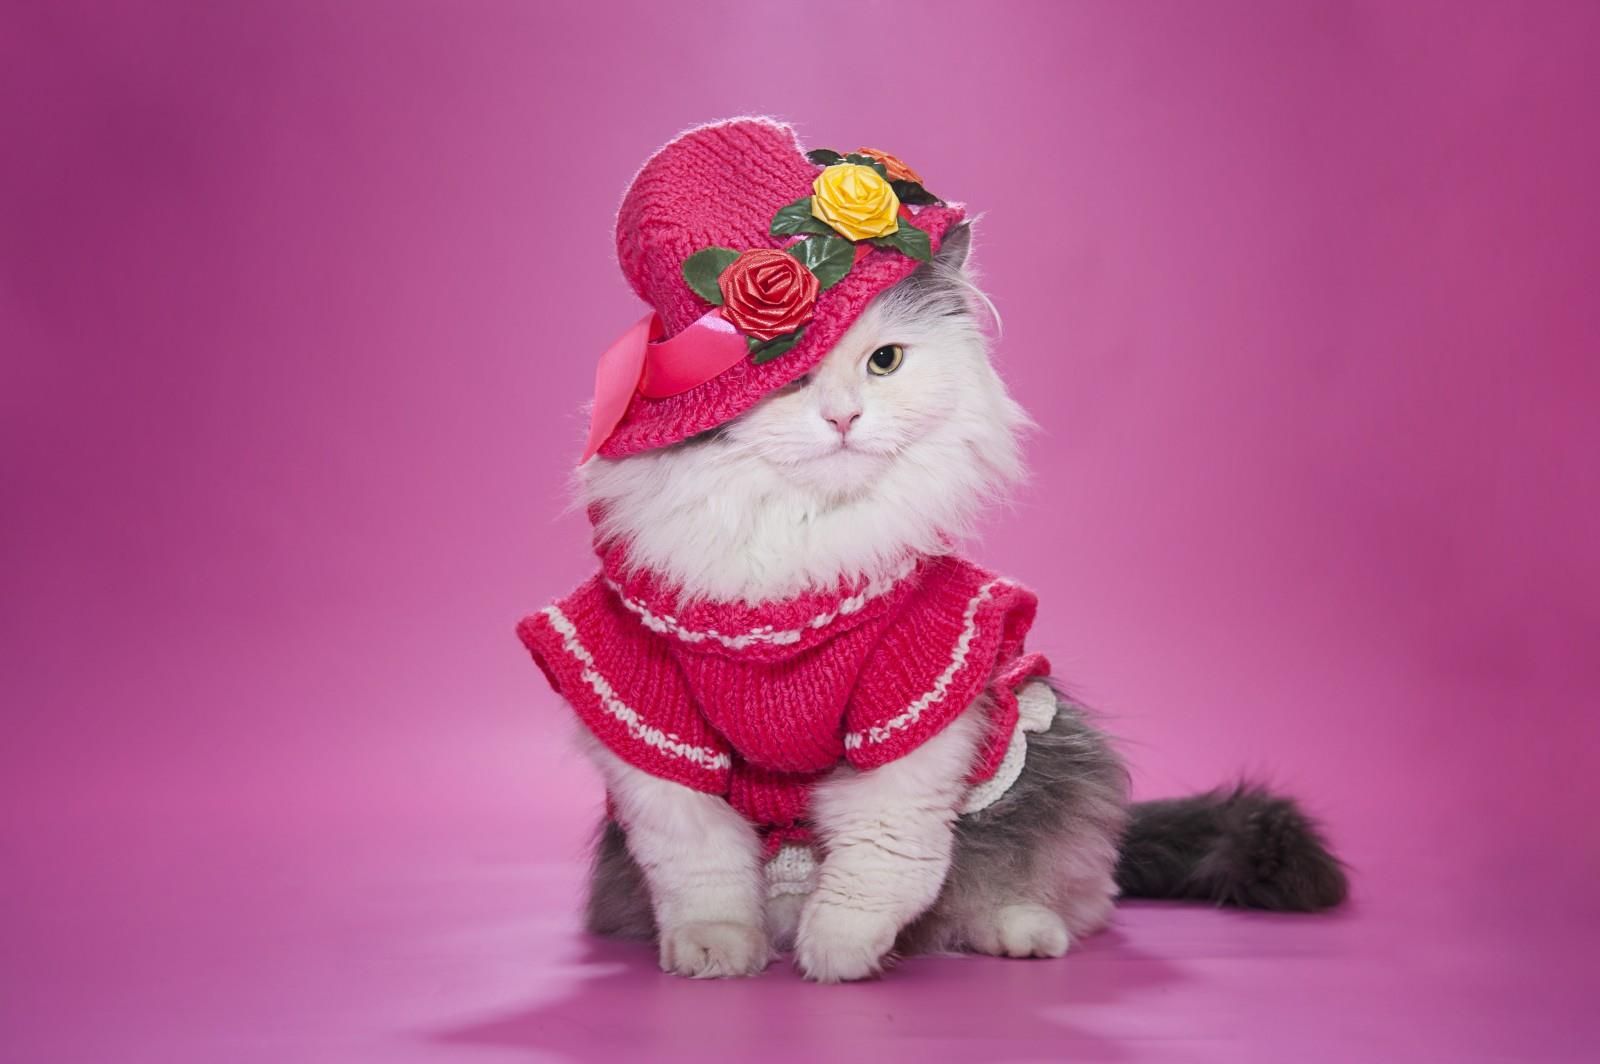 Sweet Baby Girl Wallpaper For Facebook Cute Cat Image In Pink Dress And Hat